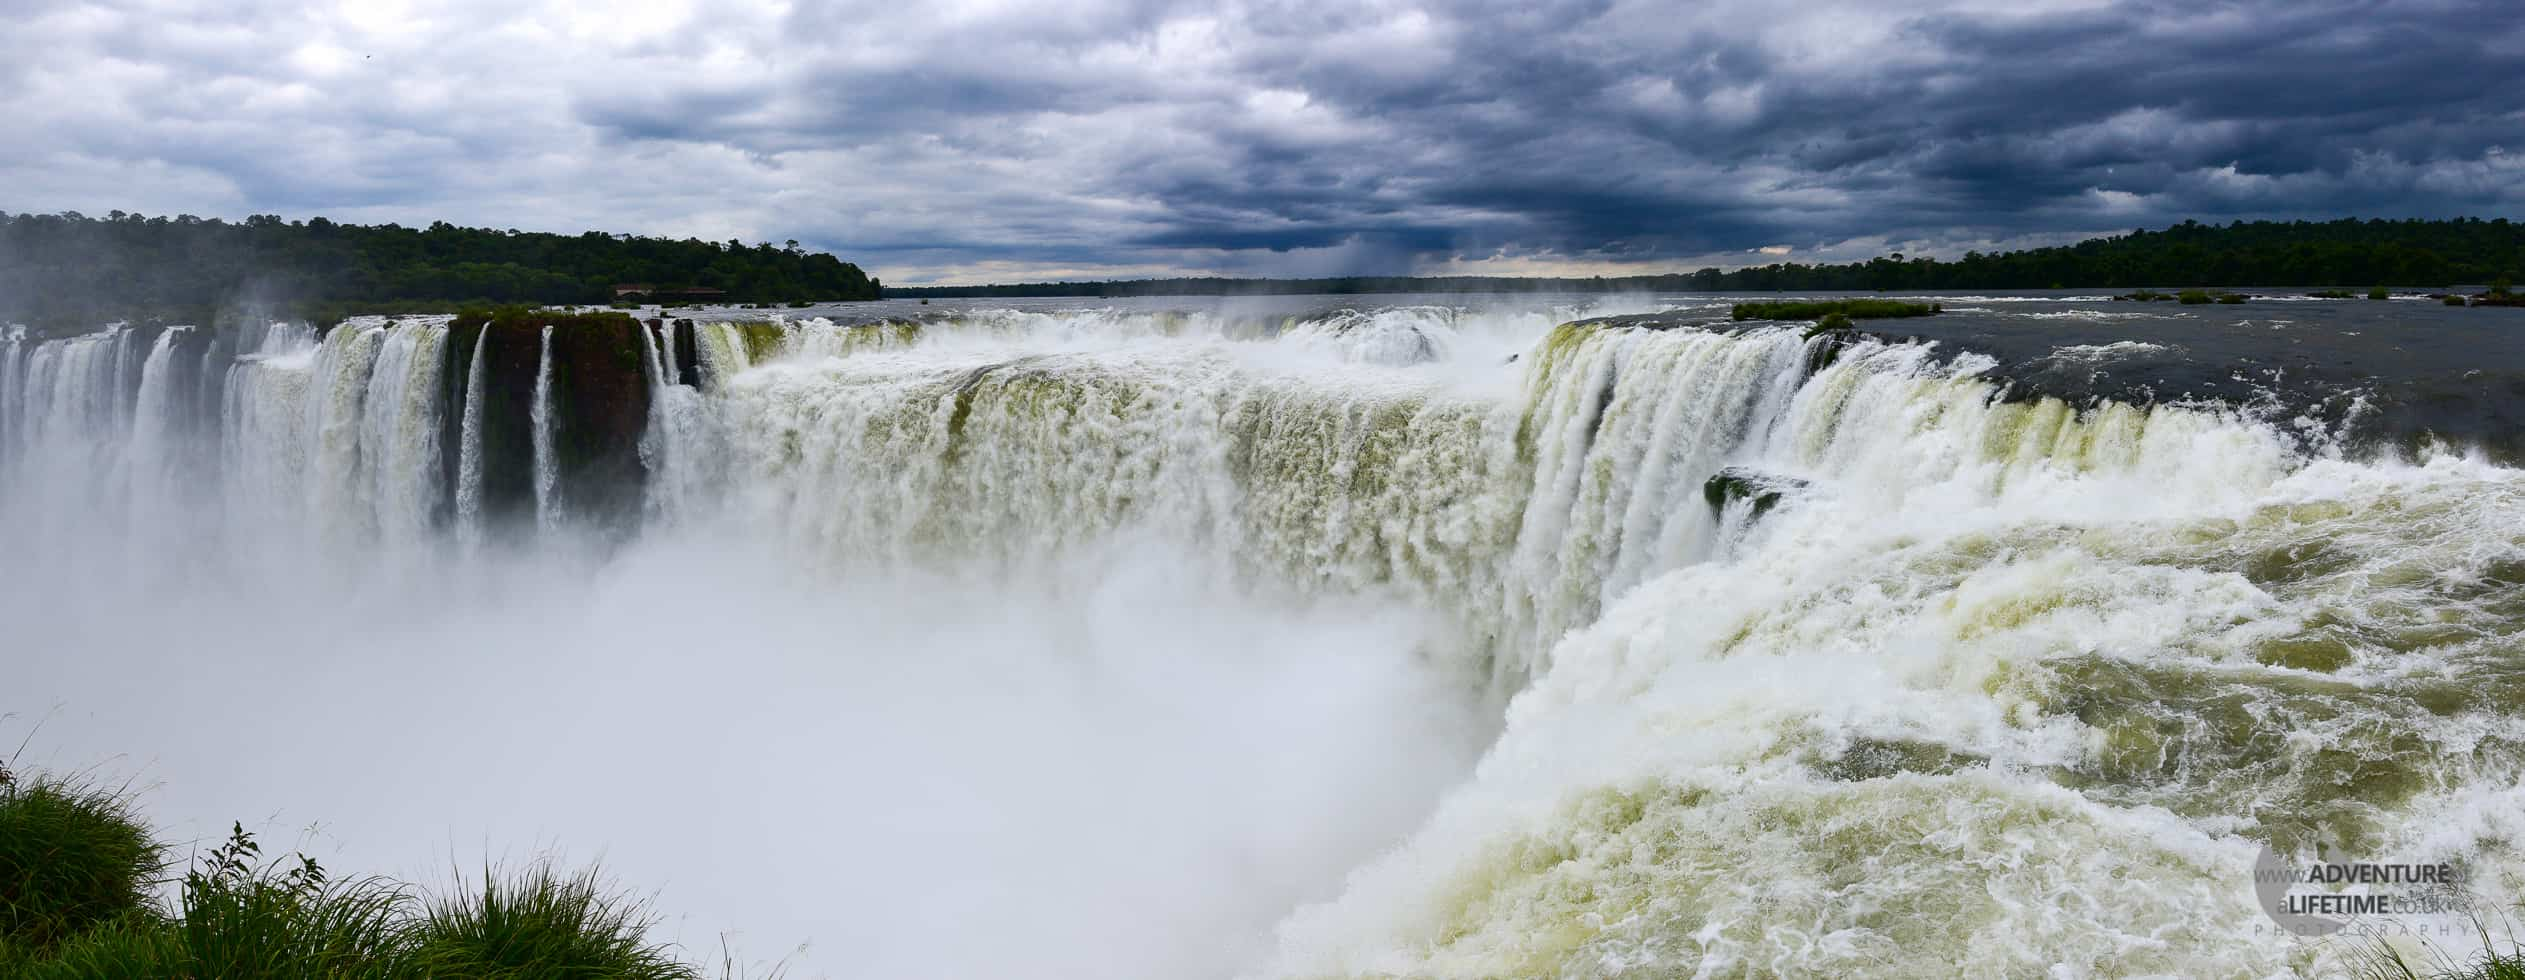 ICE Stitch of the Devil's Throat at Iguazu Falls